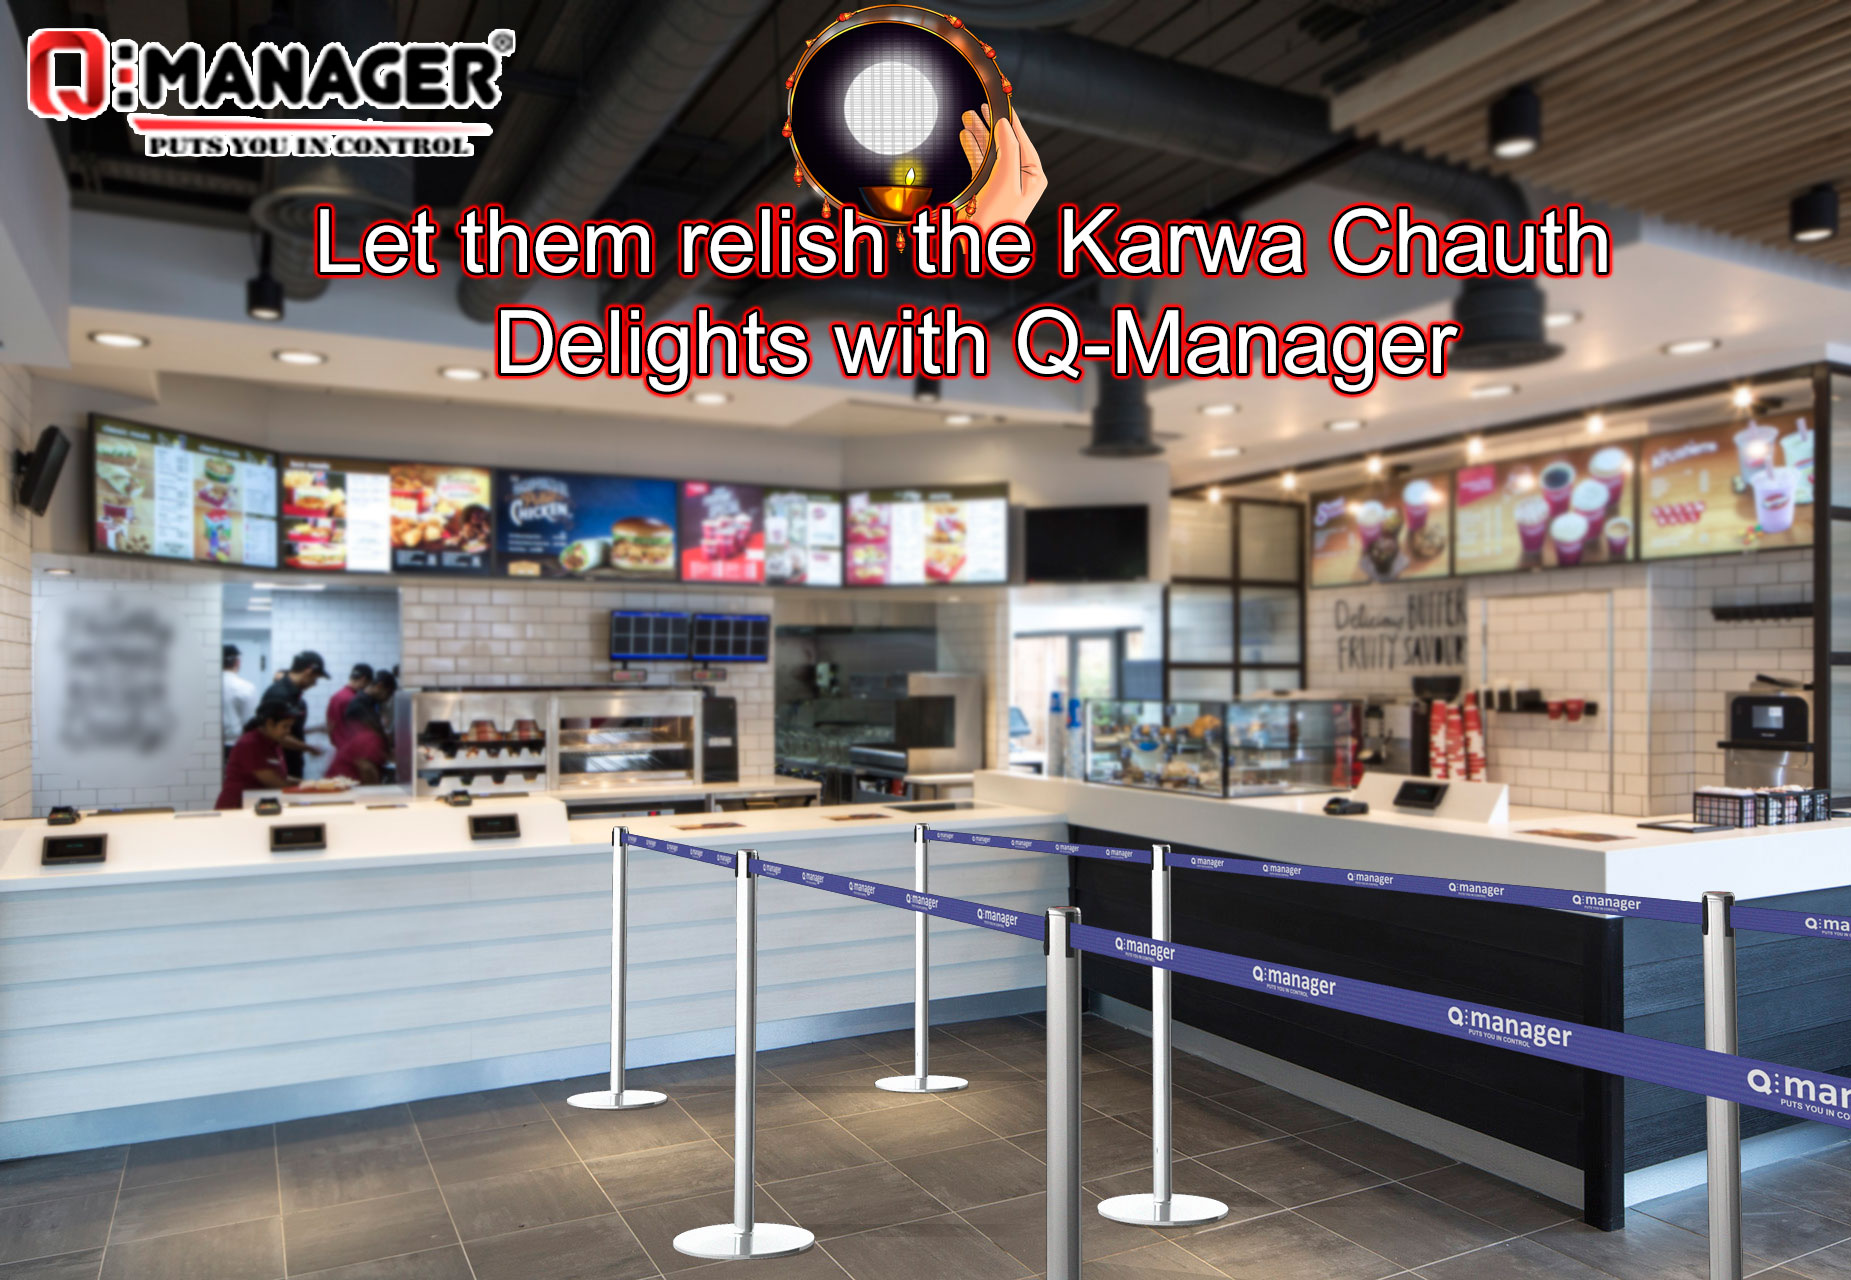 Let them relish the Karwa Chauth Delights with Q-Manager